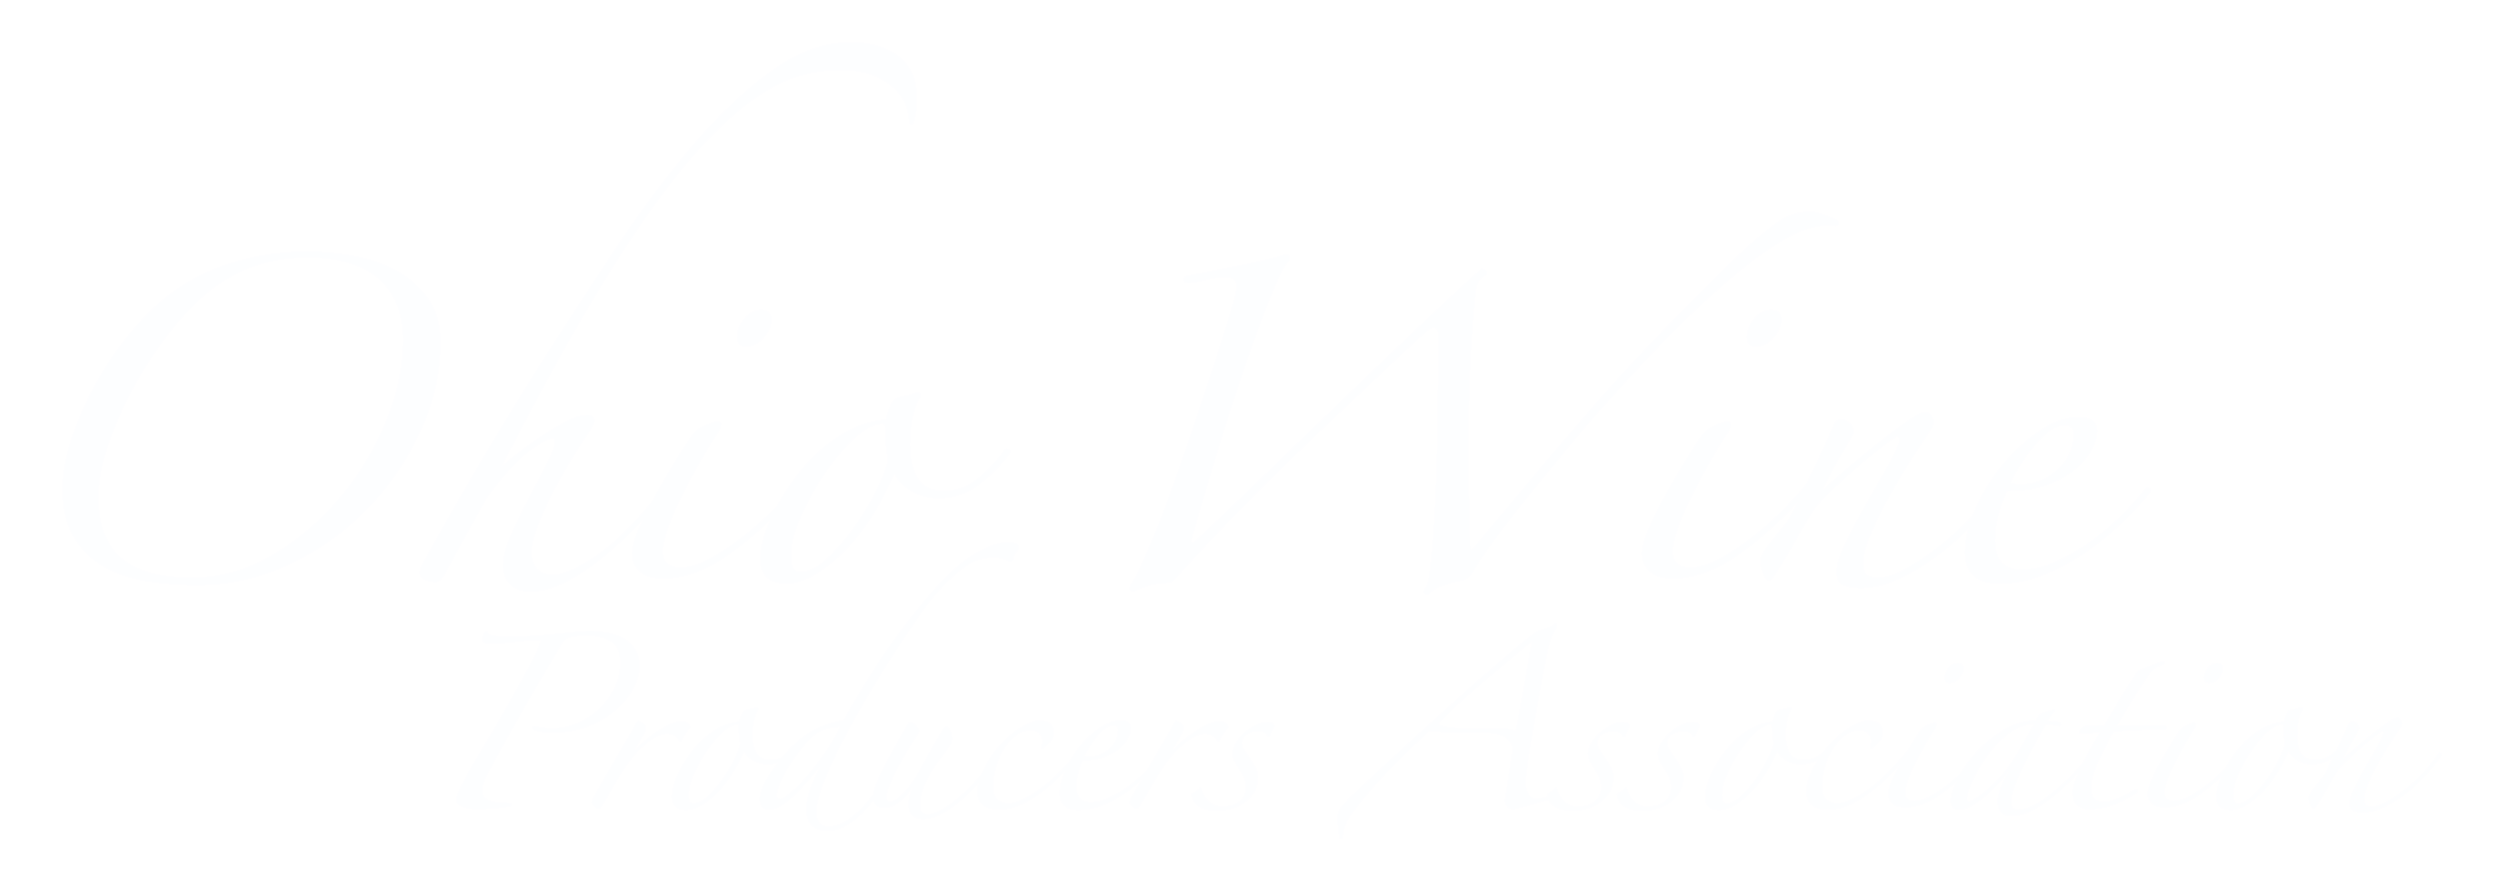 Ohio-Wine-Producers-Association.png